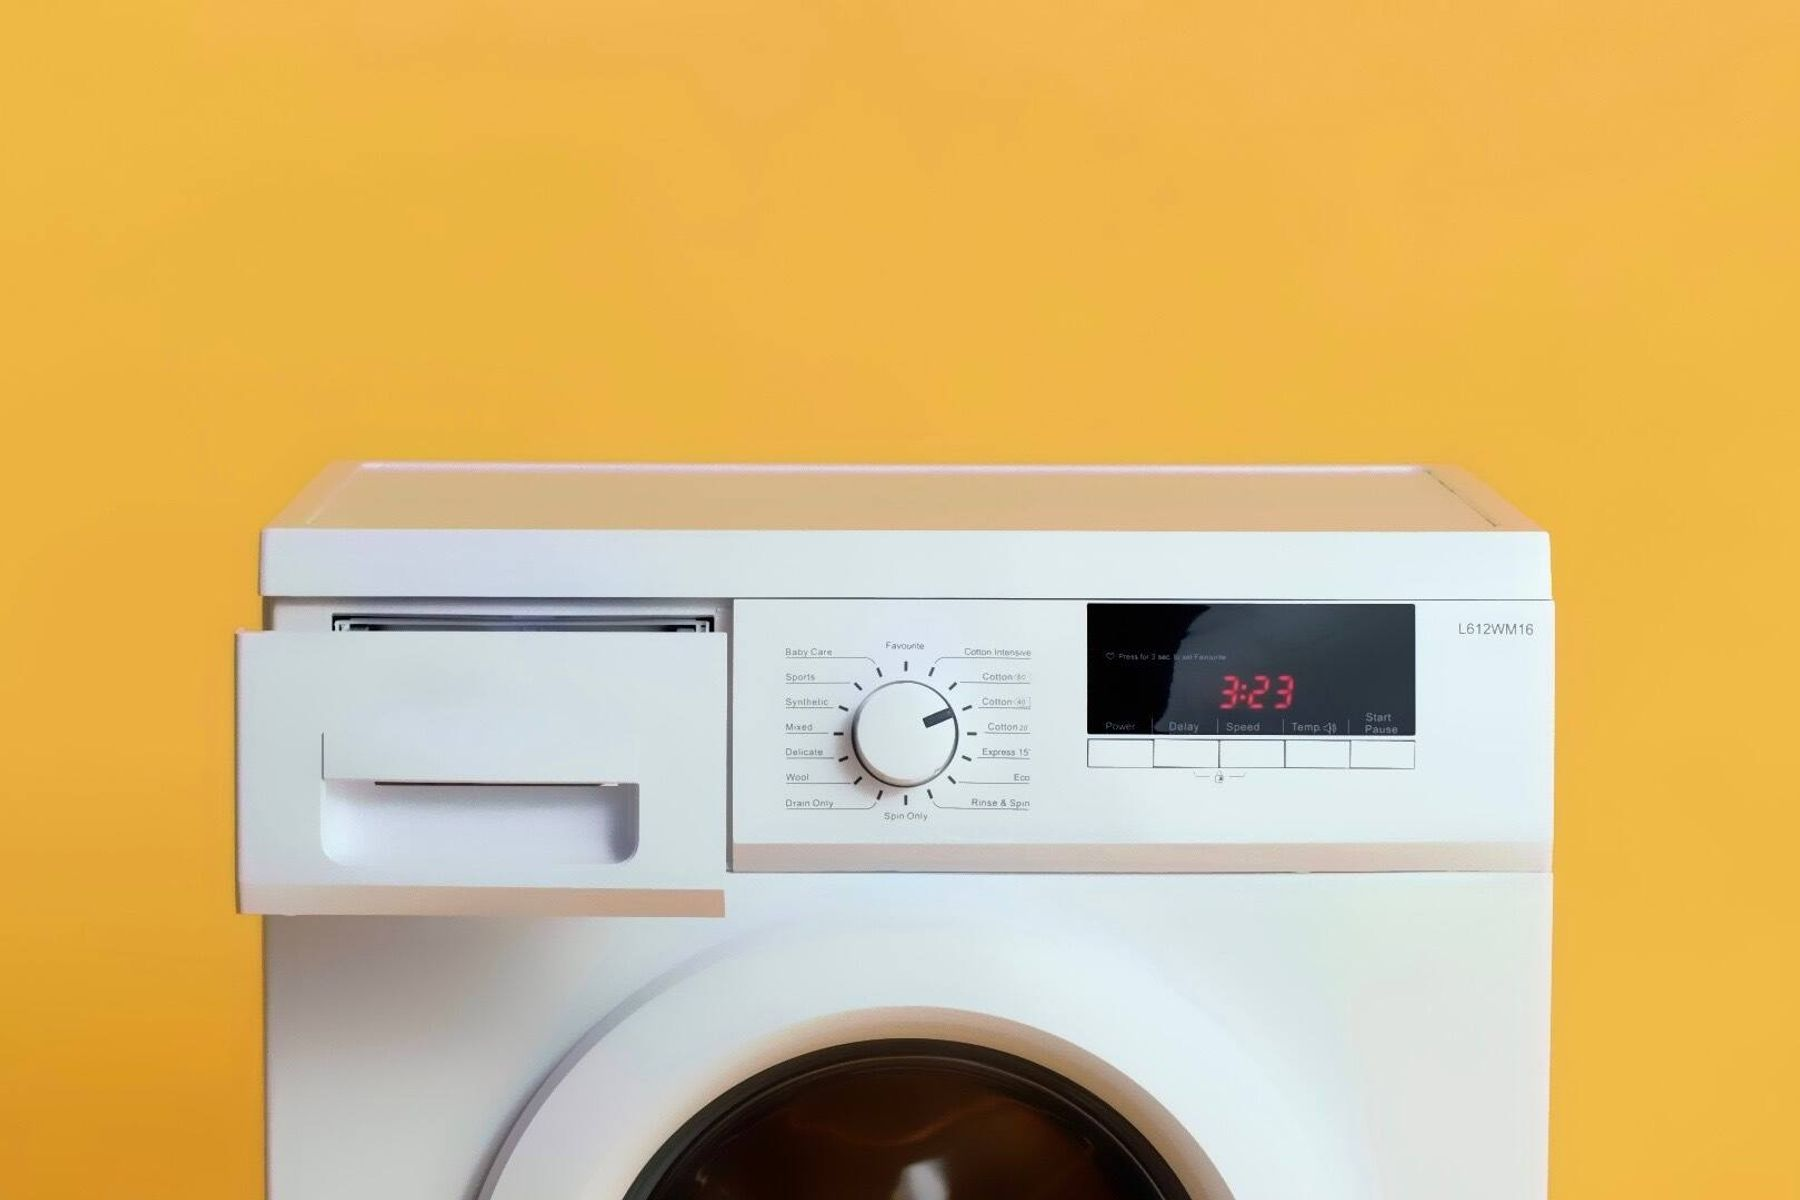 how to wash clothes in a washing machine